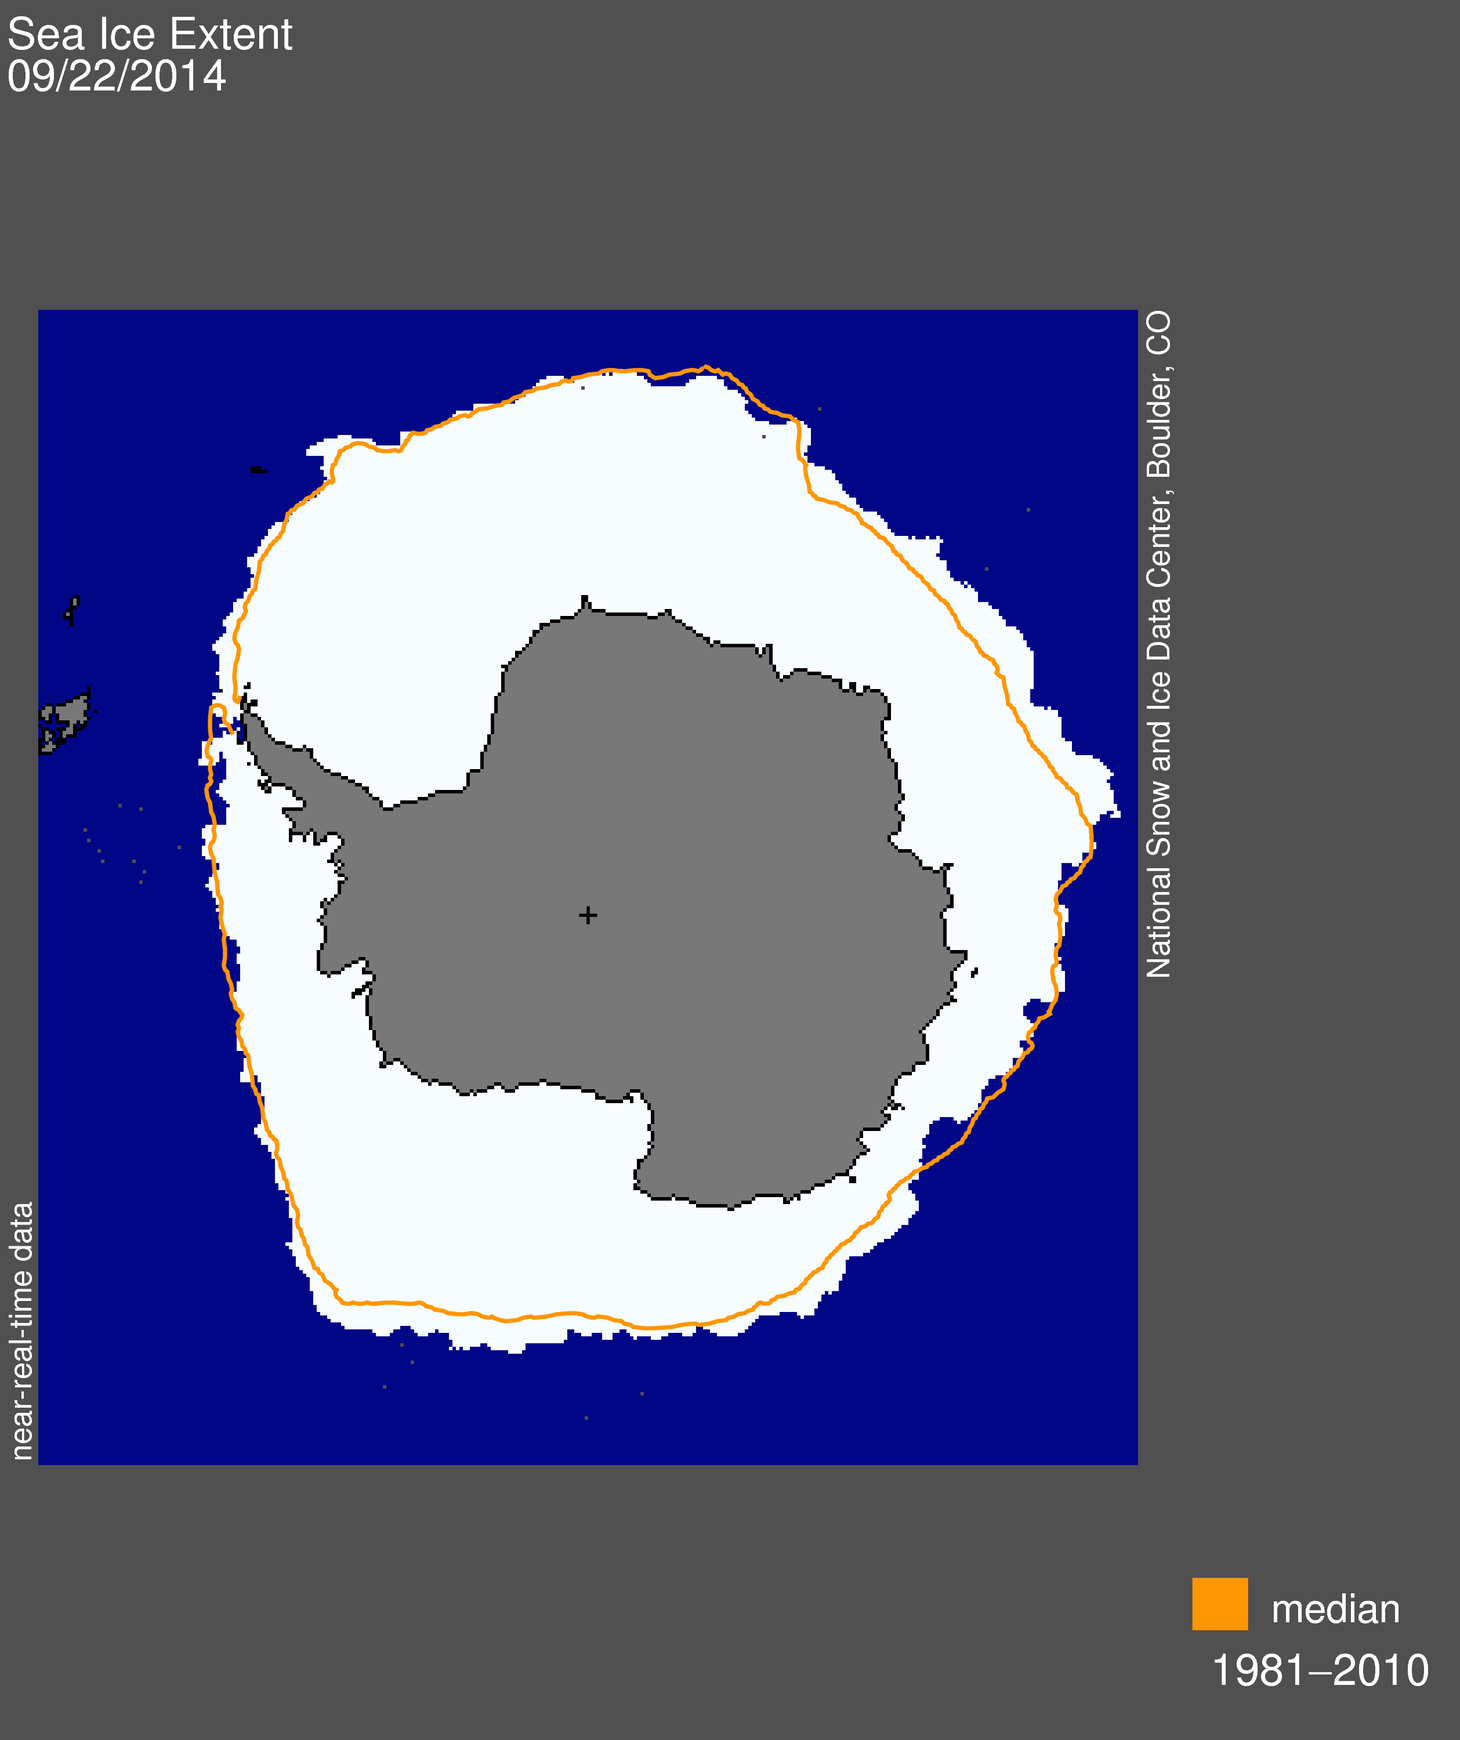 2014 melt season in review   Arctic Sea Ice News and Analysis